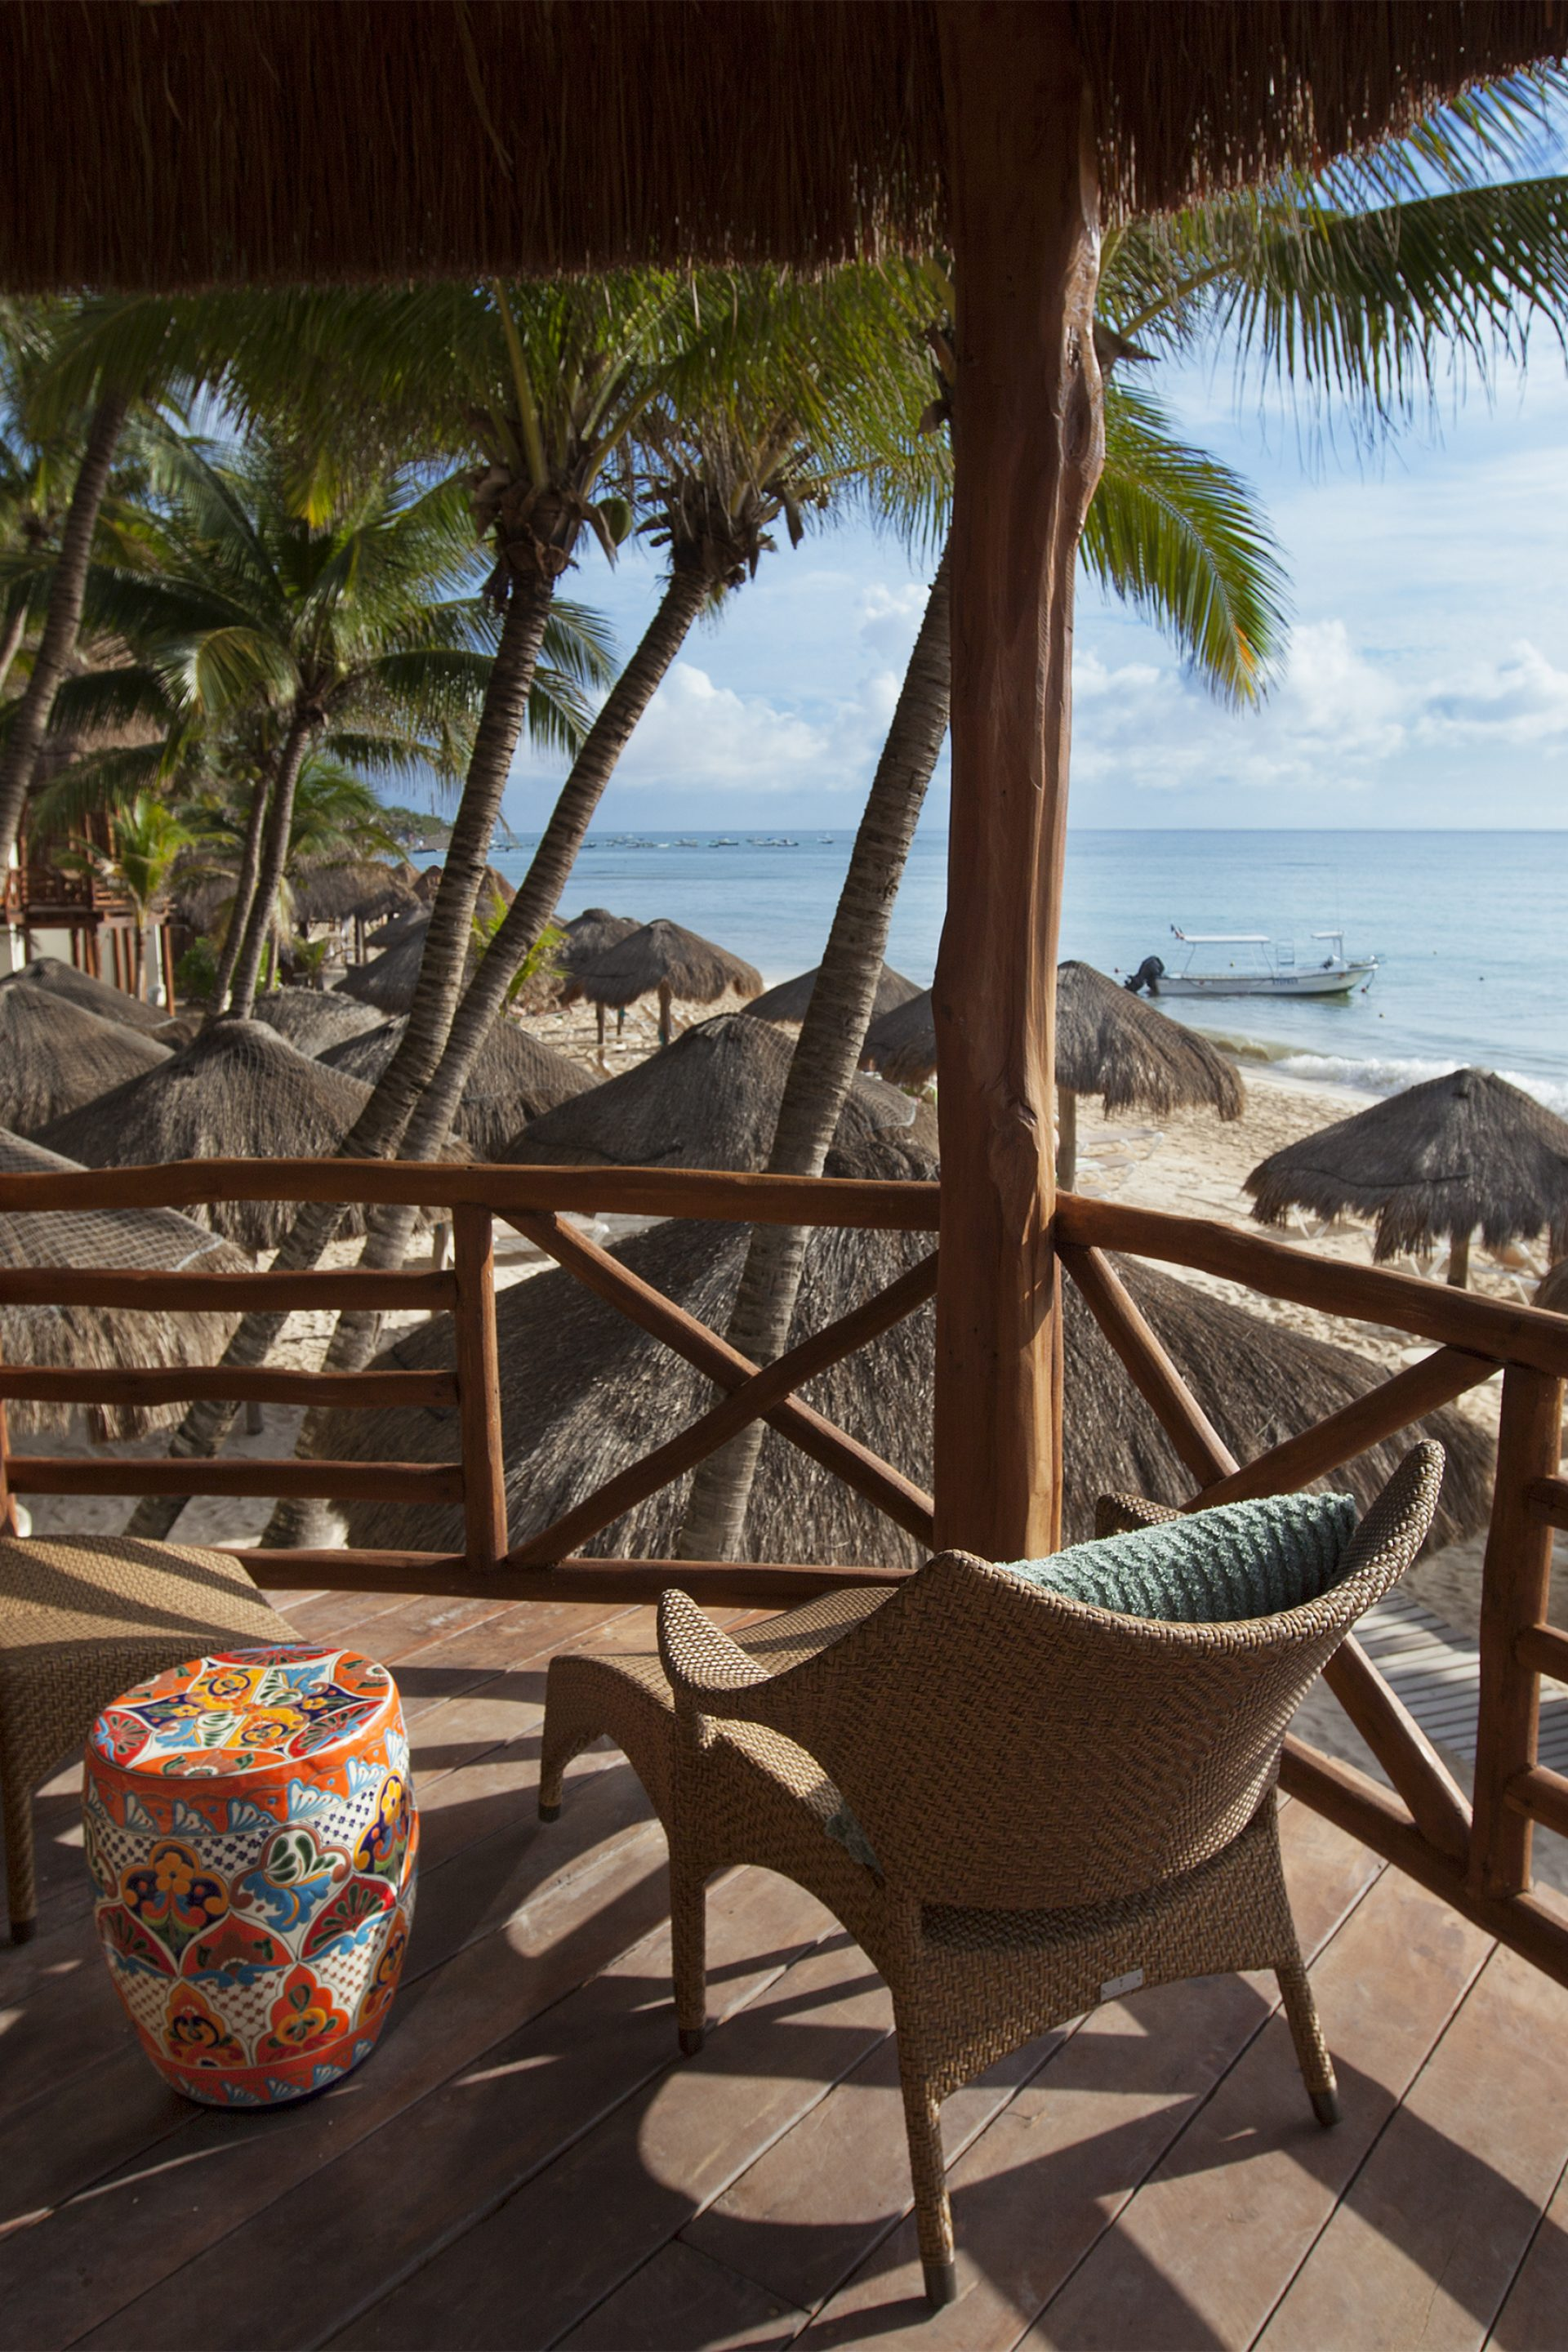 Stunning Ocean Views at Mahekal Beach Resort